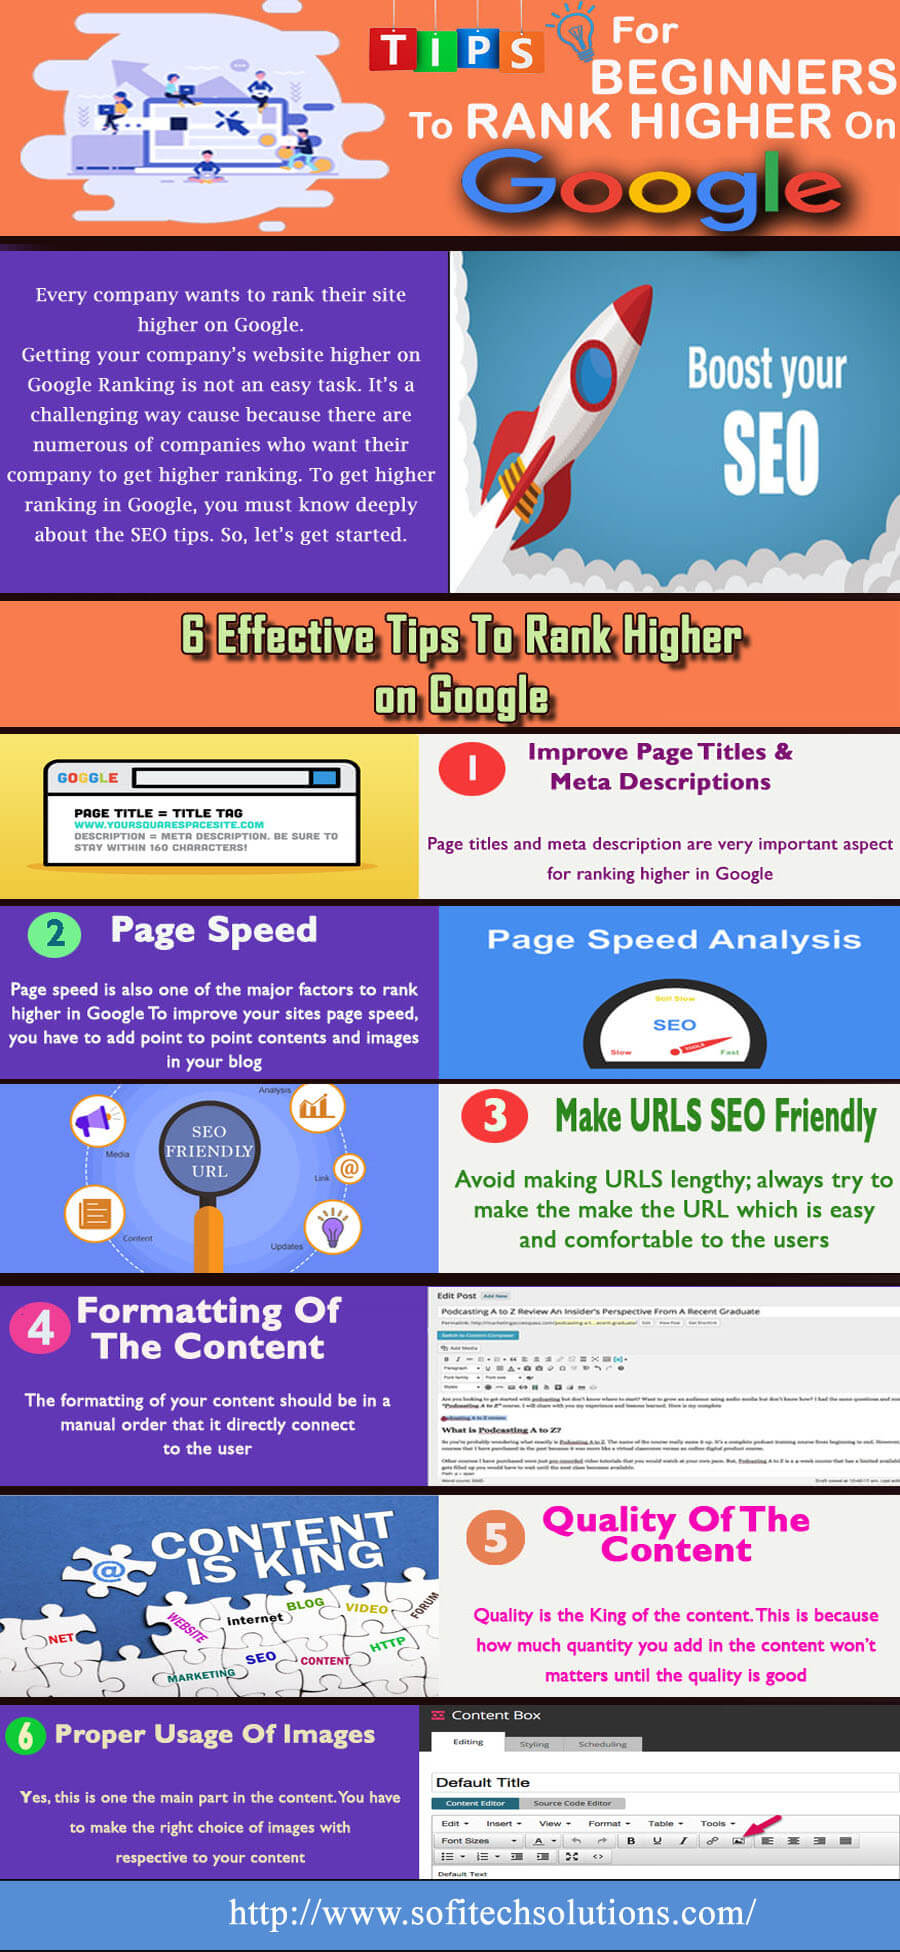 6 Effective Tips For Beginners To Rank Higher On Google